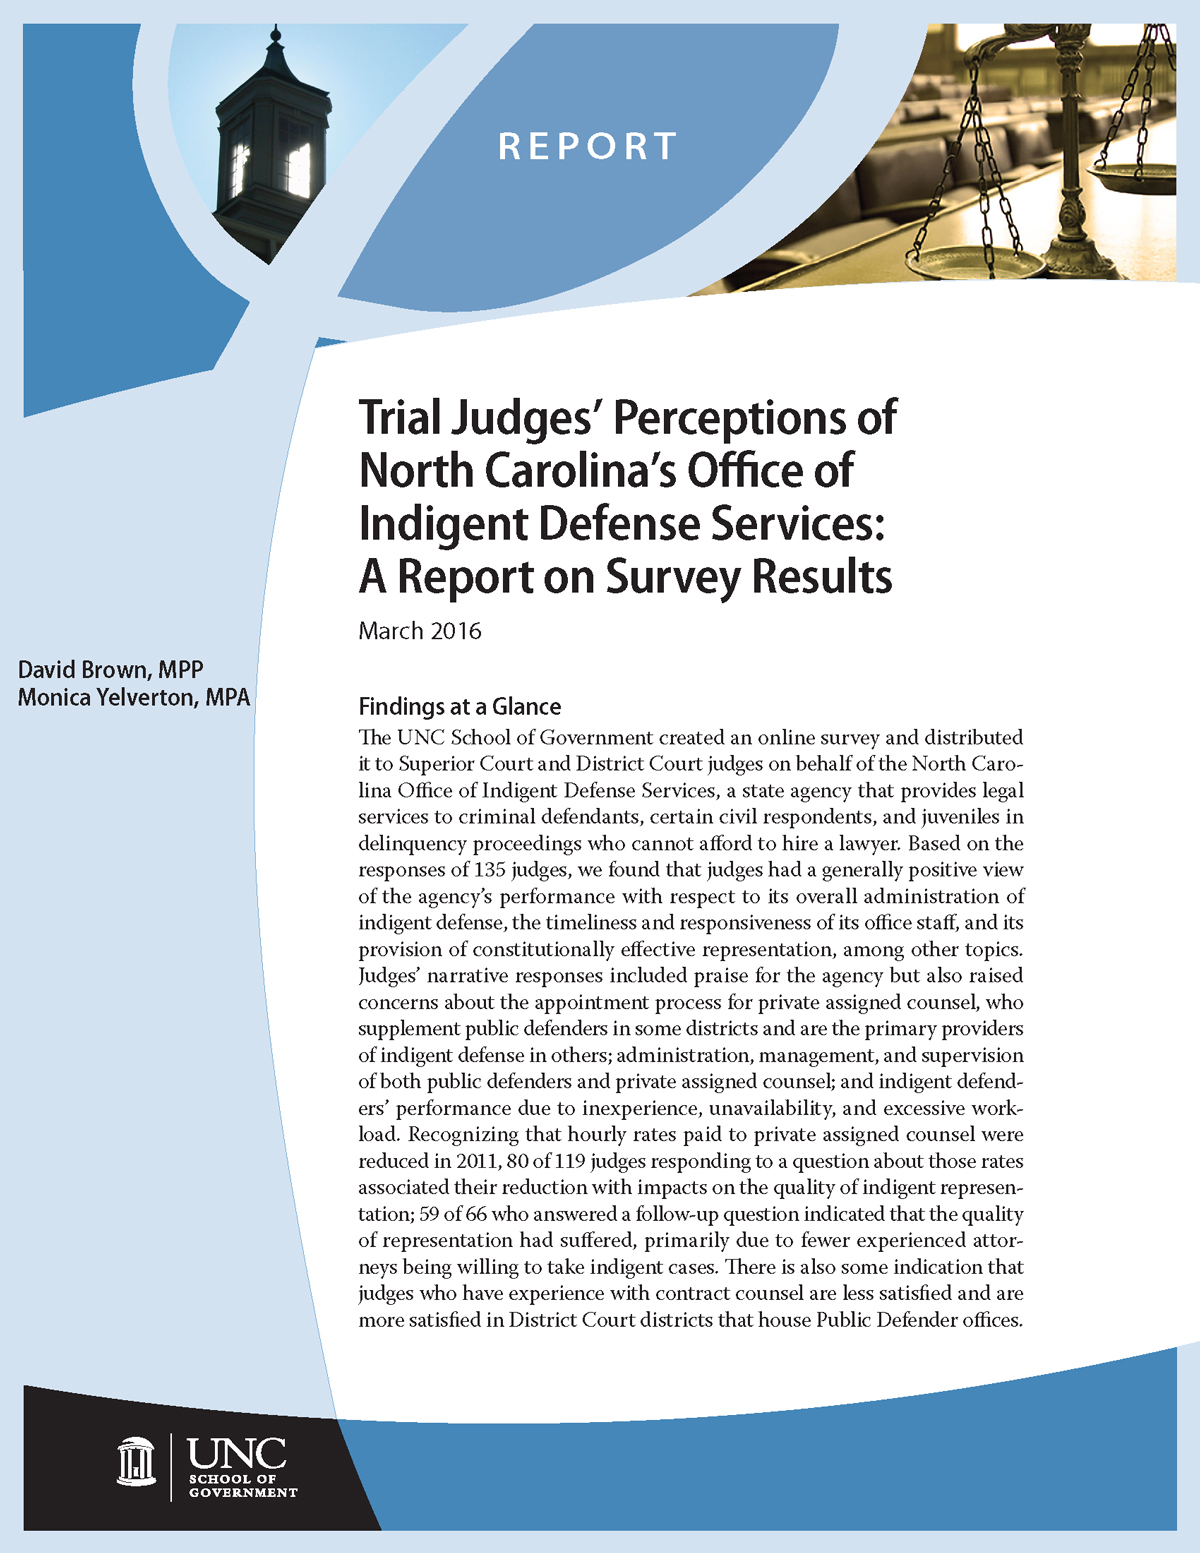 Trial Judges' Perceptions of North Carolina's Office of Indigent Defense Services: A Report on Survey Results